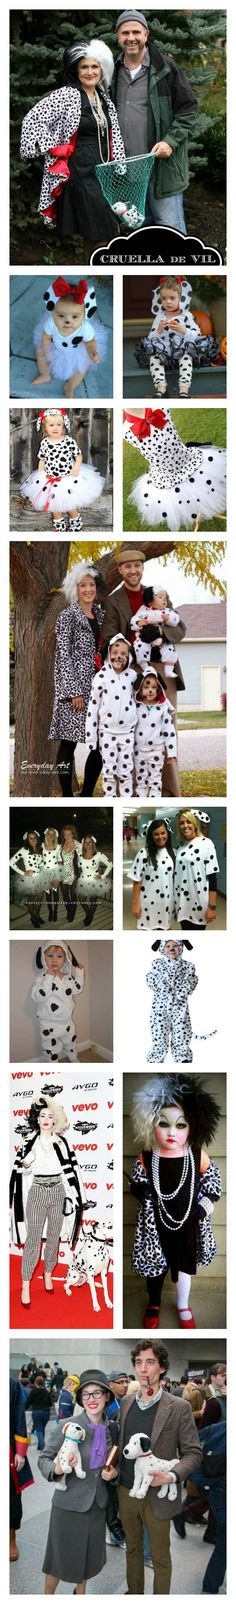 Disney's 101 dalmations costume ideas